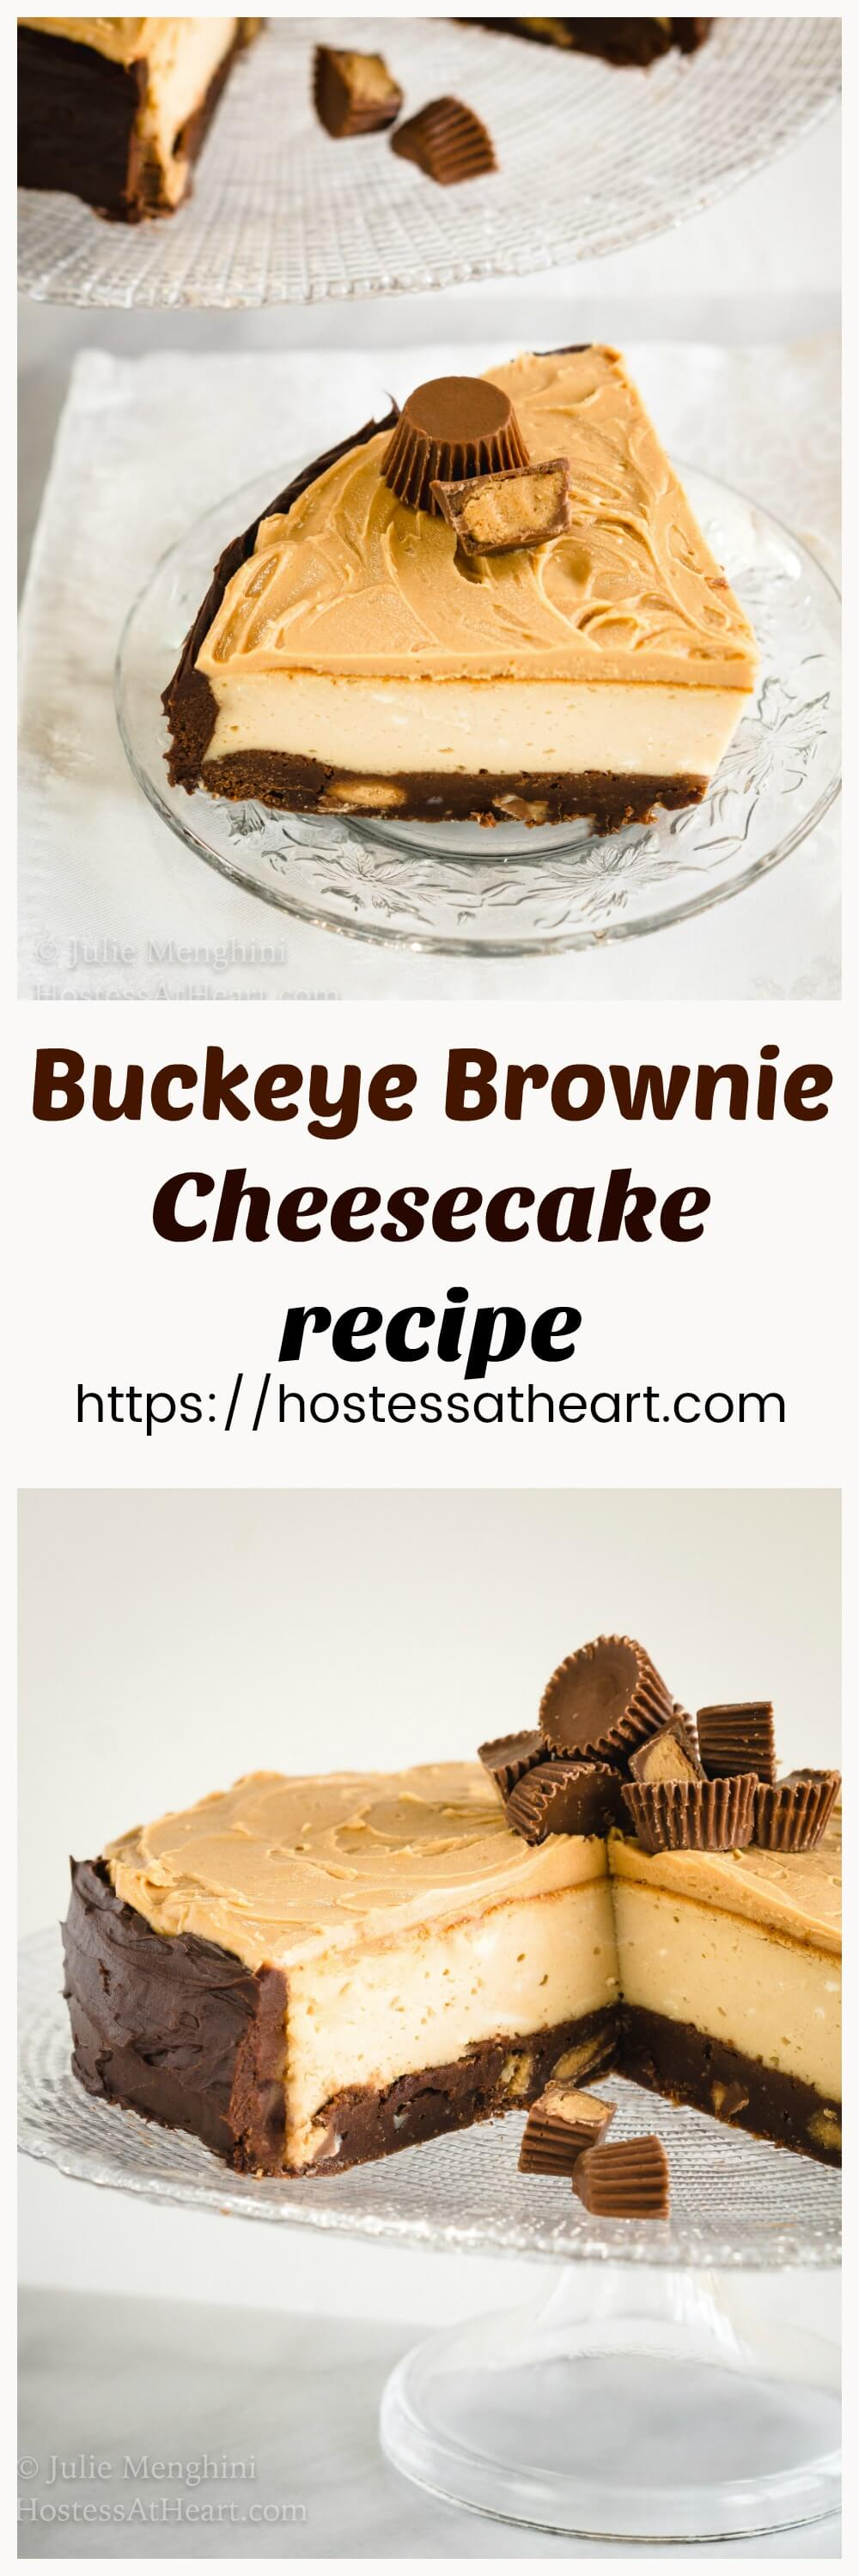 Buckeye Brownie Cheesecake is even better than it looks.  The looks that you get when you cut into that cake will have you making it over and over. #Cheesecake #Cheesecakedessert #ChocolateDessert #homemade #Comfortfood | Chocolate Dessert | Cheesecake Dessert | Easy Cheesecake